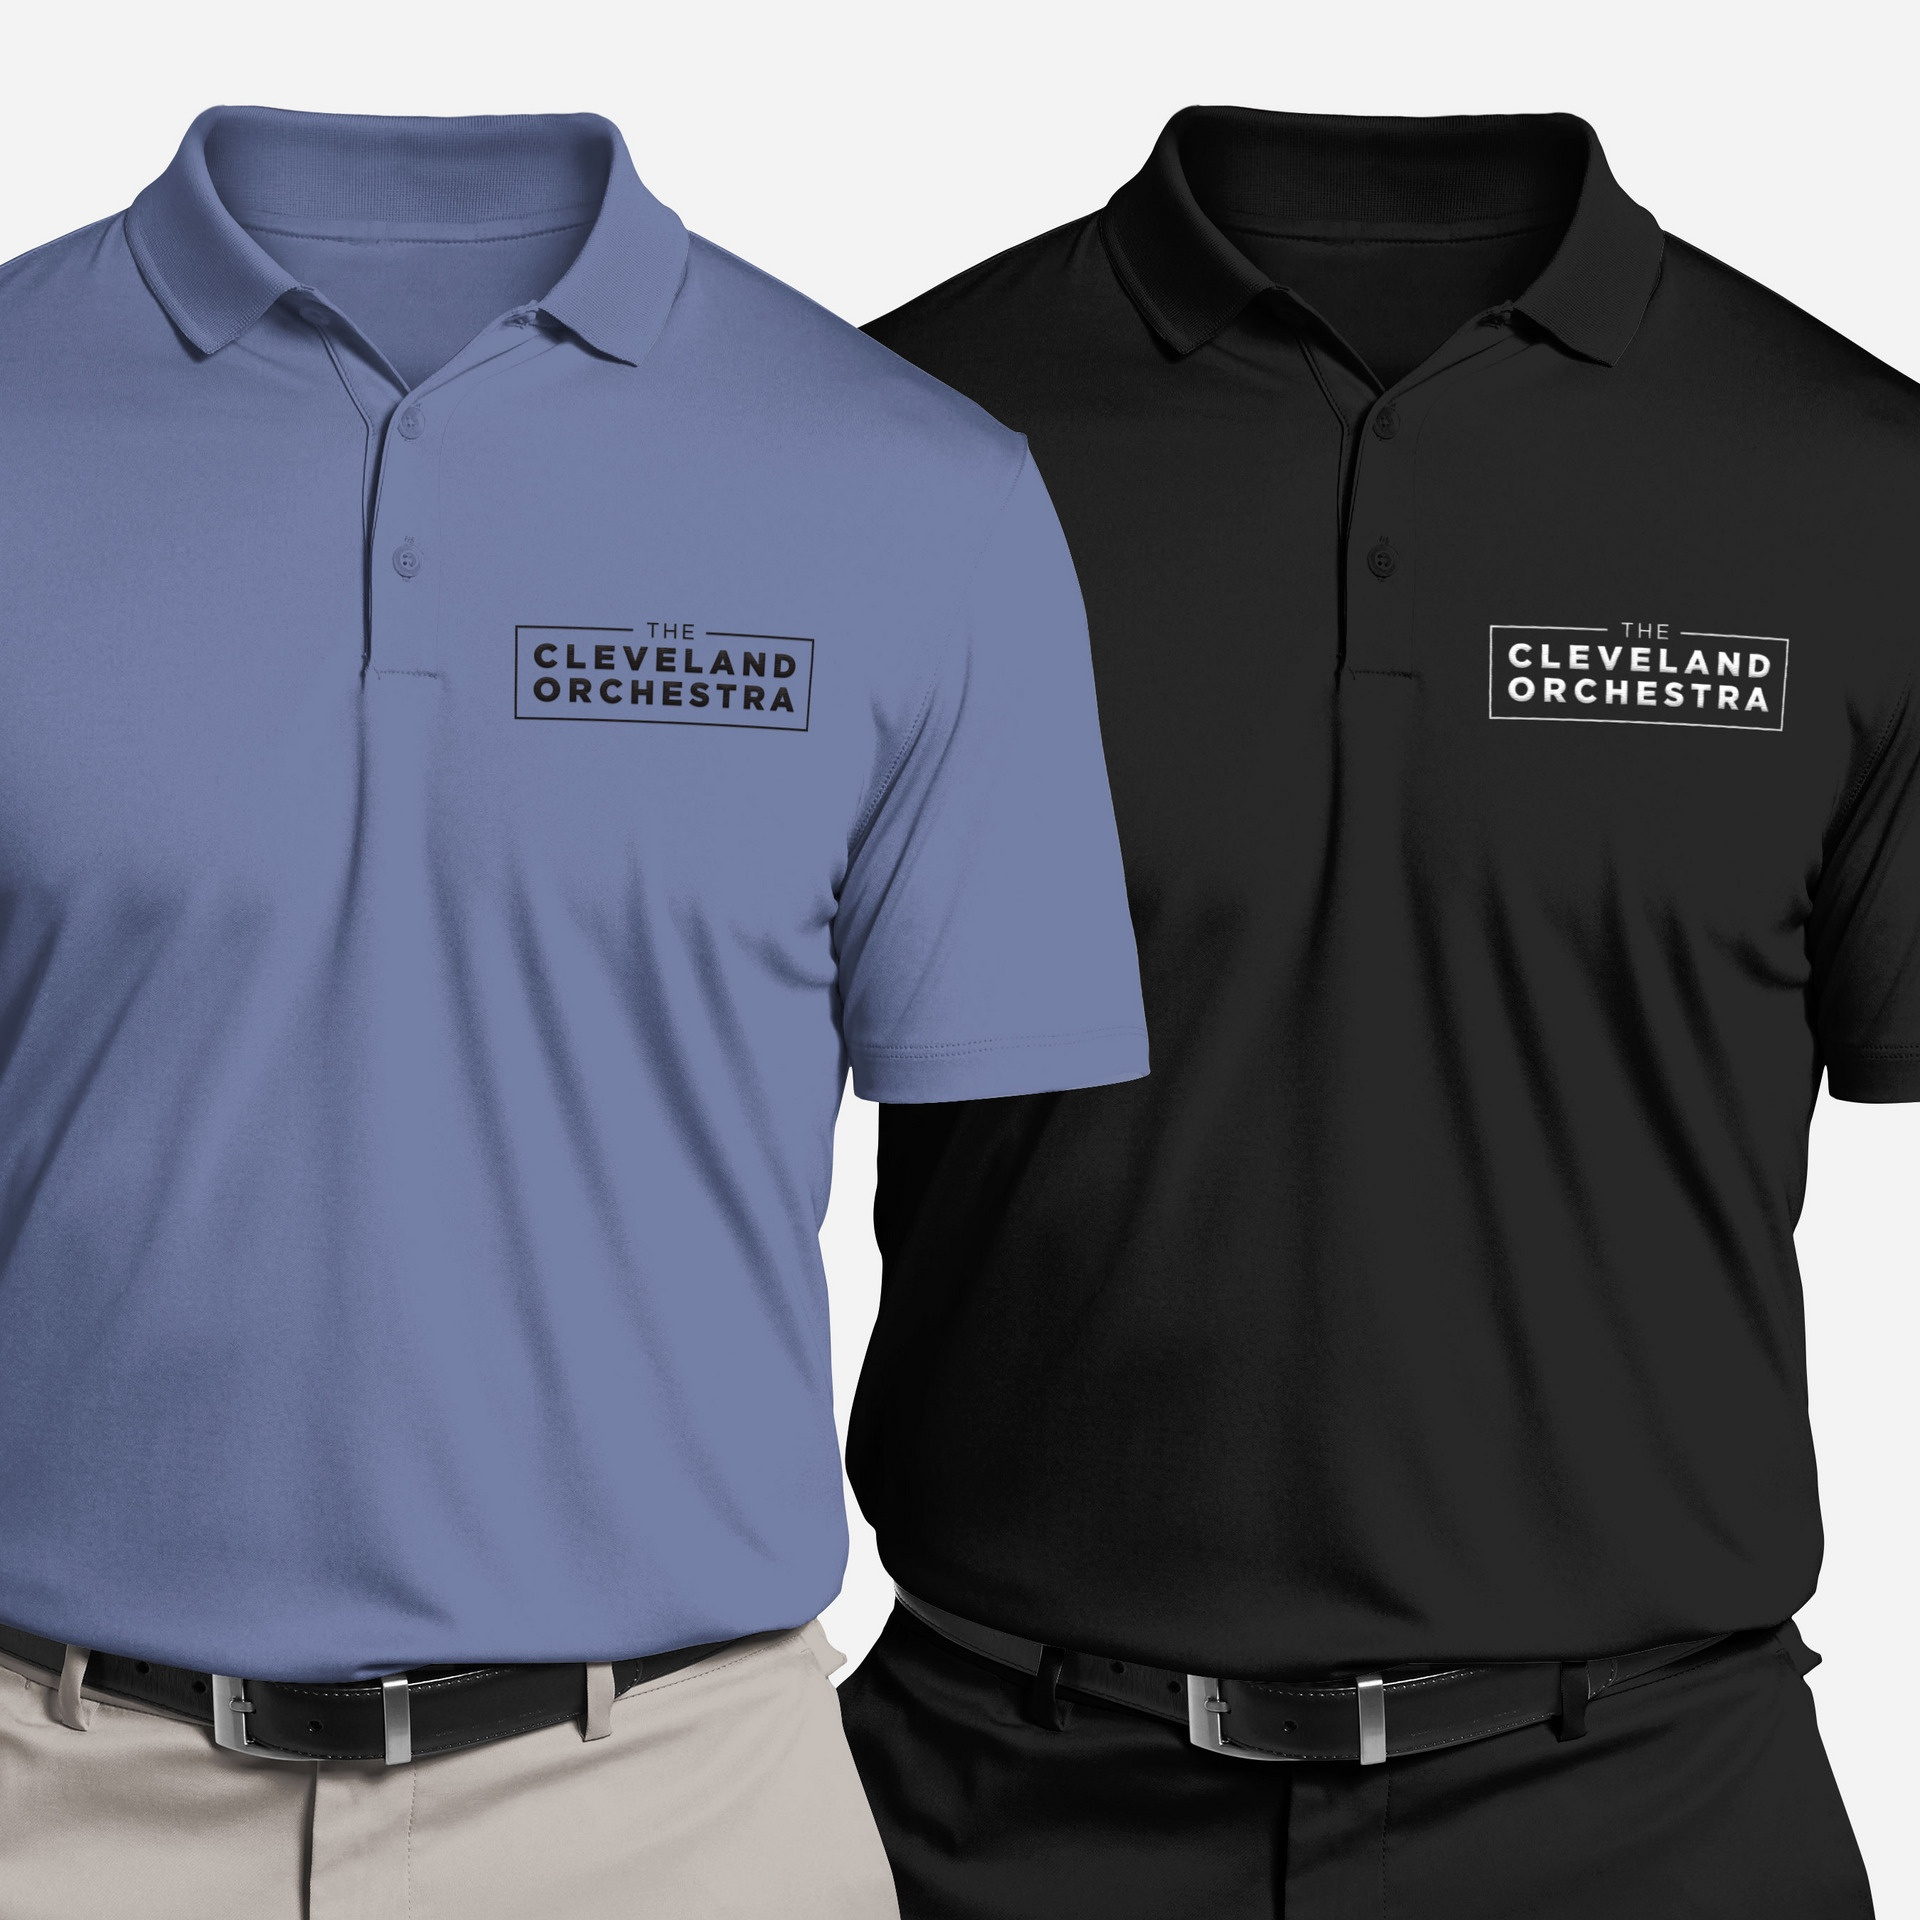 Cleveland Orchestra Polo